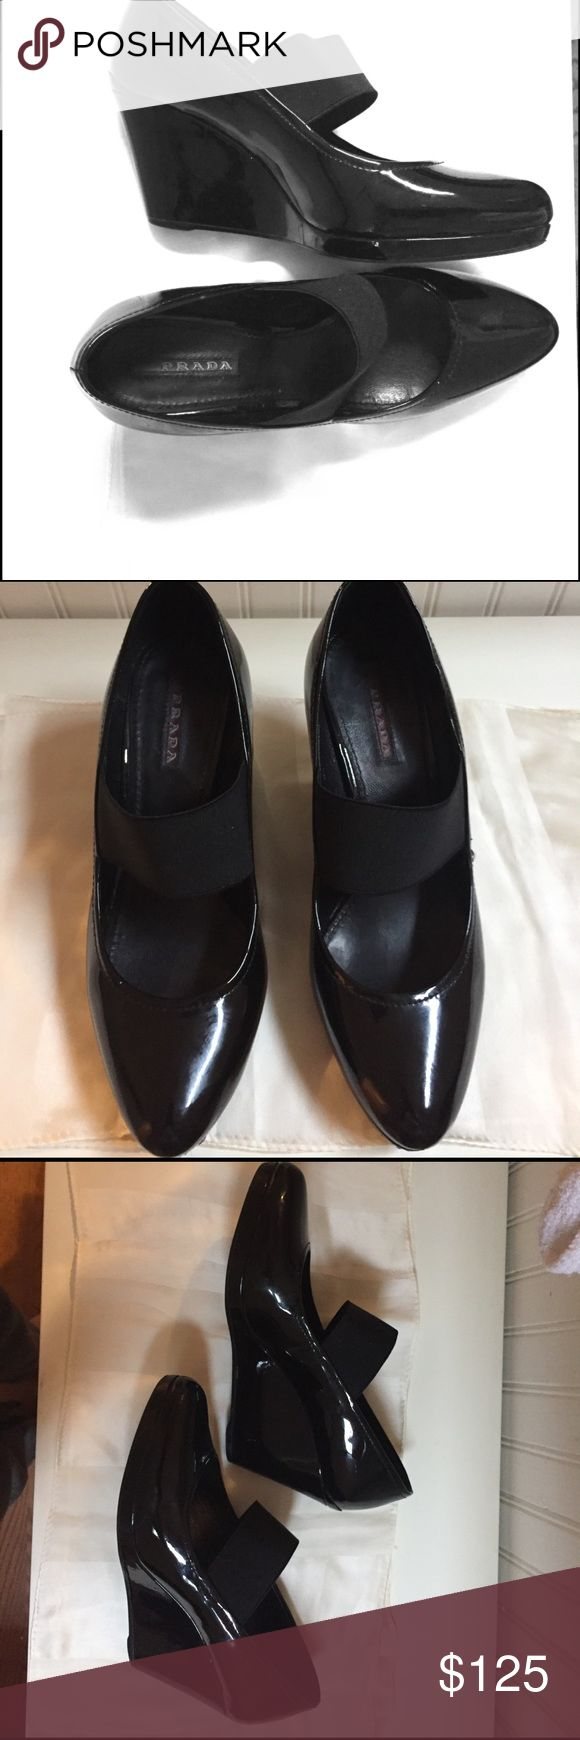 Black Prada Mary Jane Wedge Shoes In good Condition. Couple of minor scuffs on one shoe.  💯 Authentic Prada Shoes